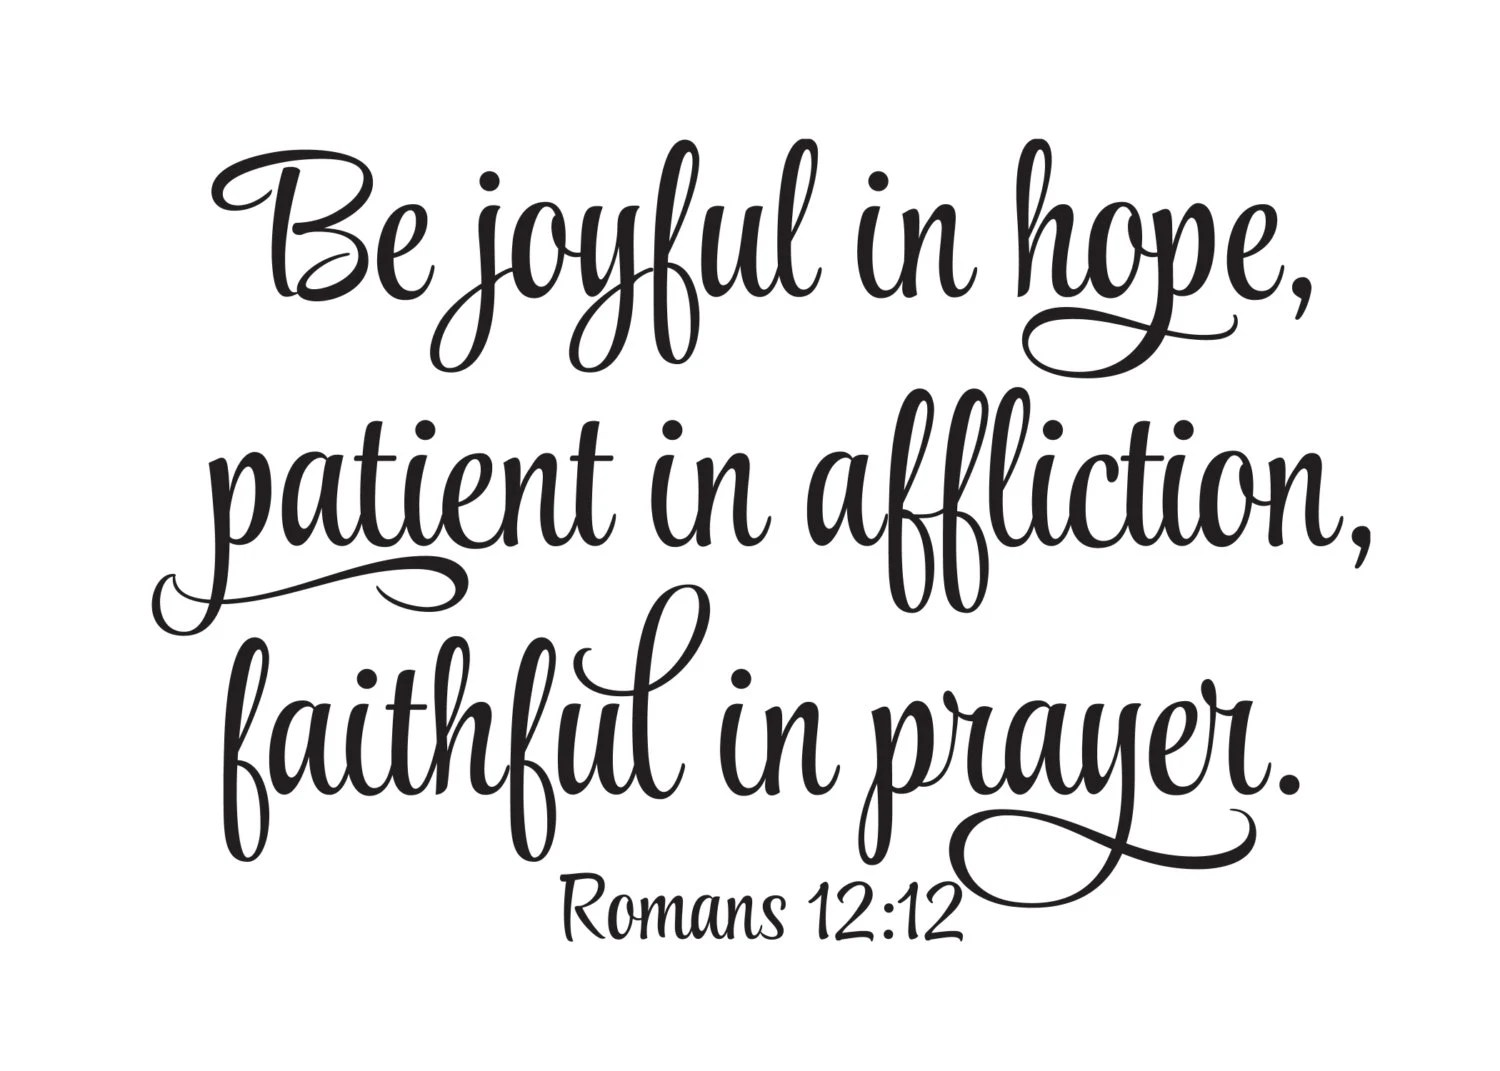 Romans 12:12 Be joyful in hope patient in affliction faithful